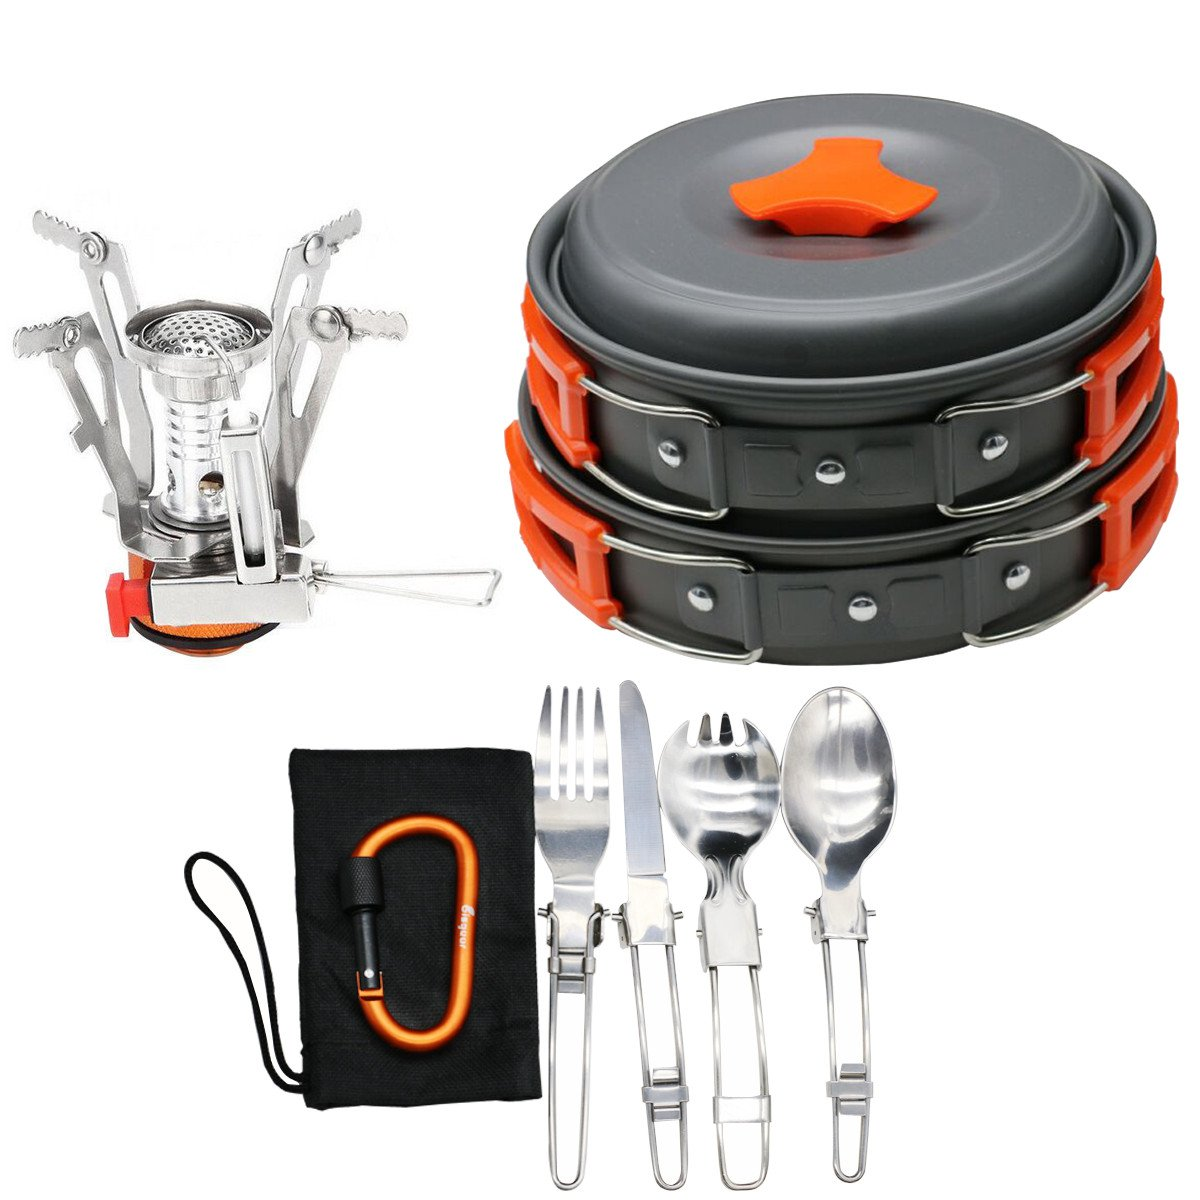 12-16 Pcs Camping Cookware by Bisgear